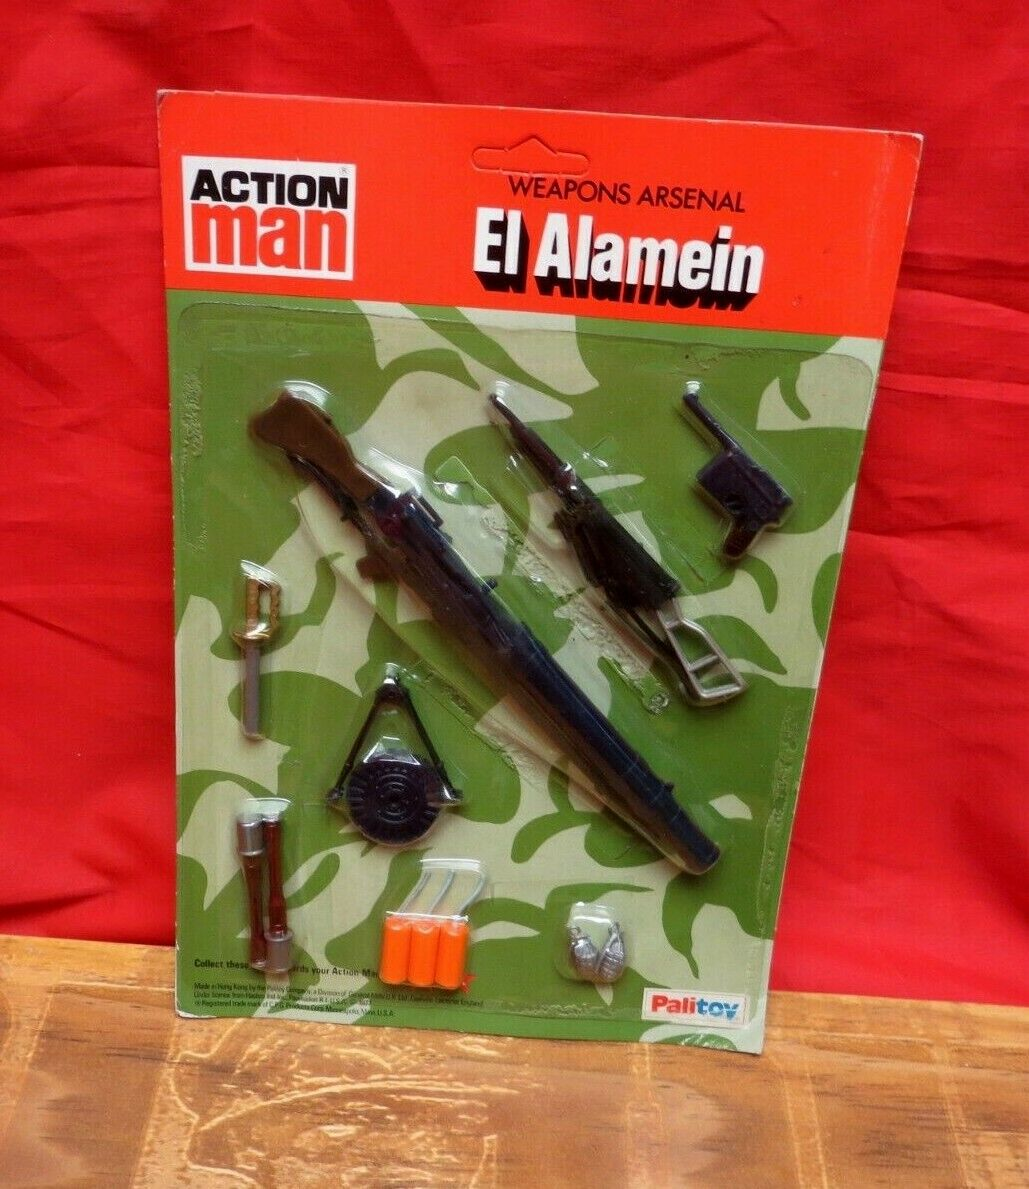 1964 VINTAGE GI JOE JOEZETA ACTION MAN PALITOY WEAPONS ARSENAL EL ALAMEIN MOC